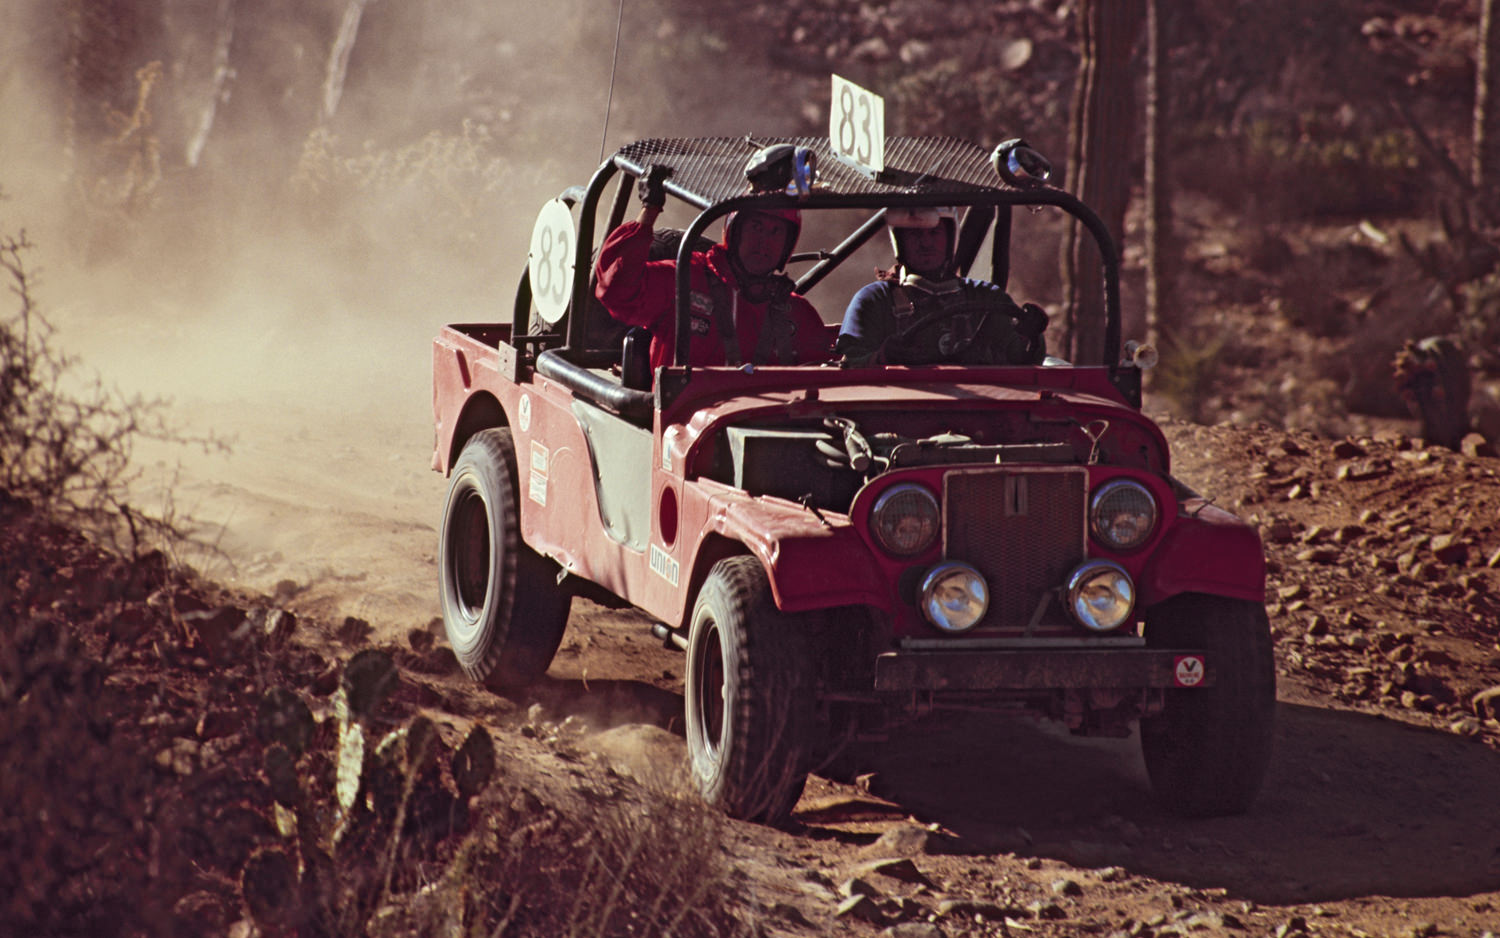 The First Baja 1000: 27 Hours to La Paz